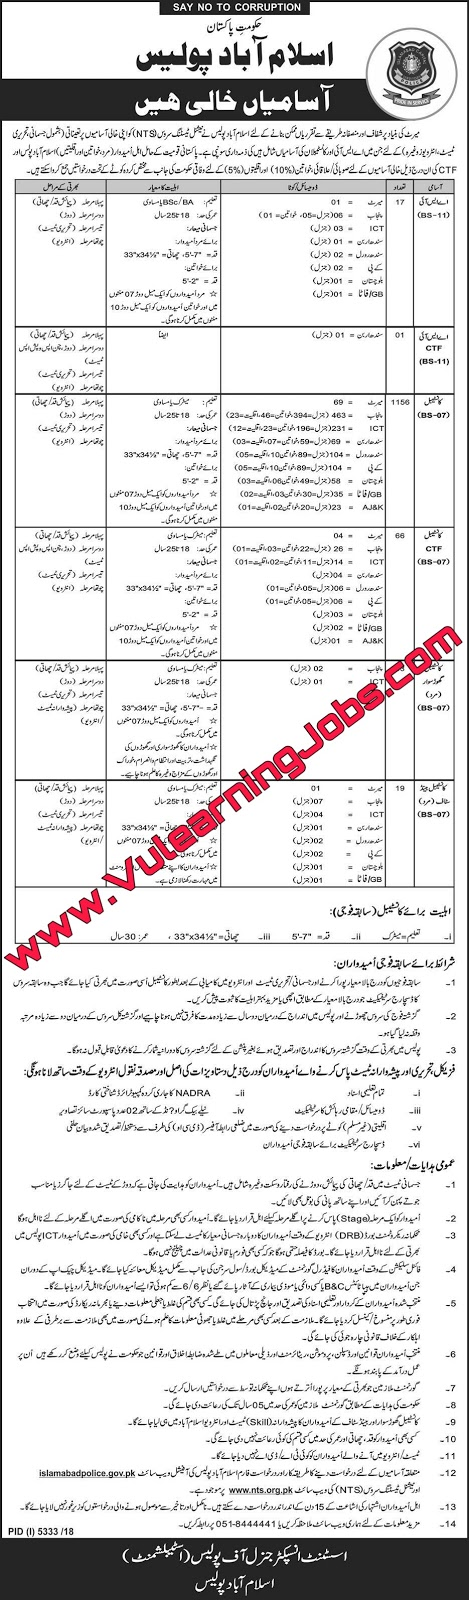 Islamabad Police Jobs May 2019 for ASI's & Constables NTS Application Form Download Latest (1262+ Posts)